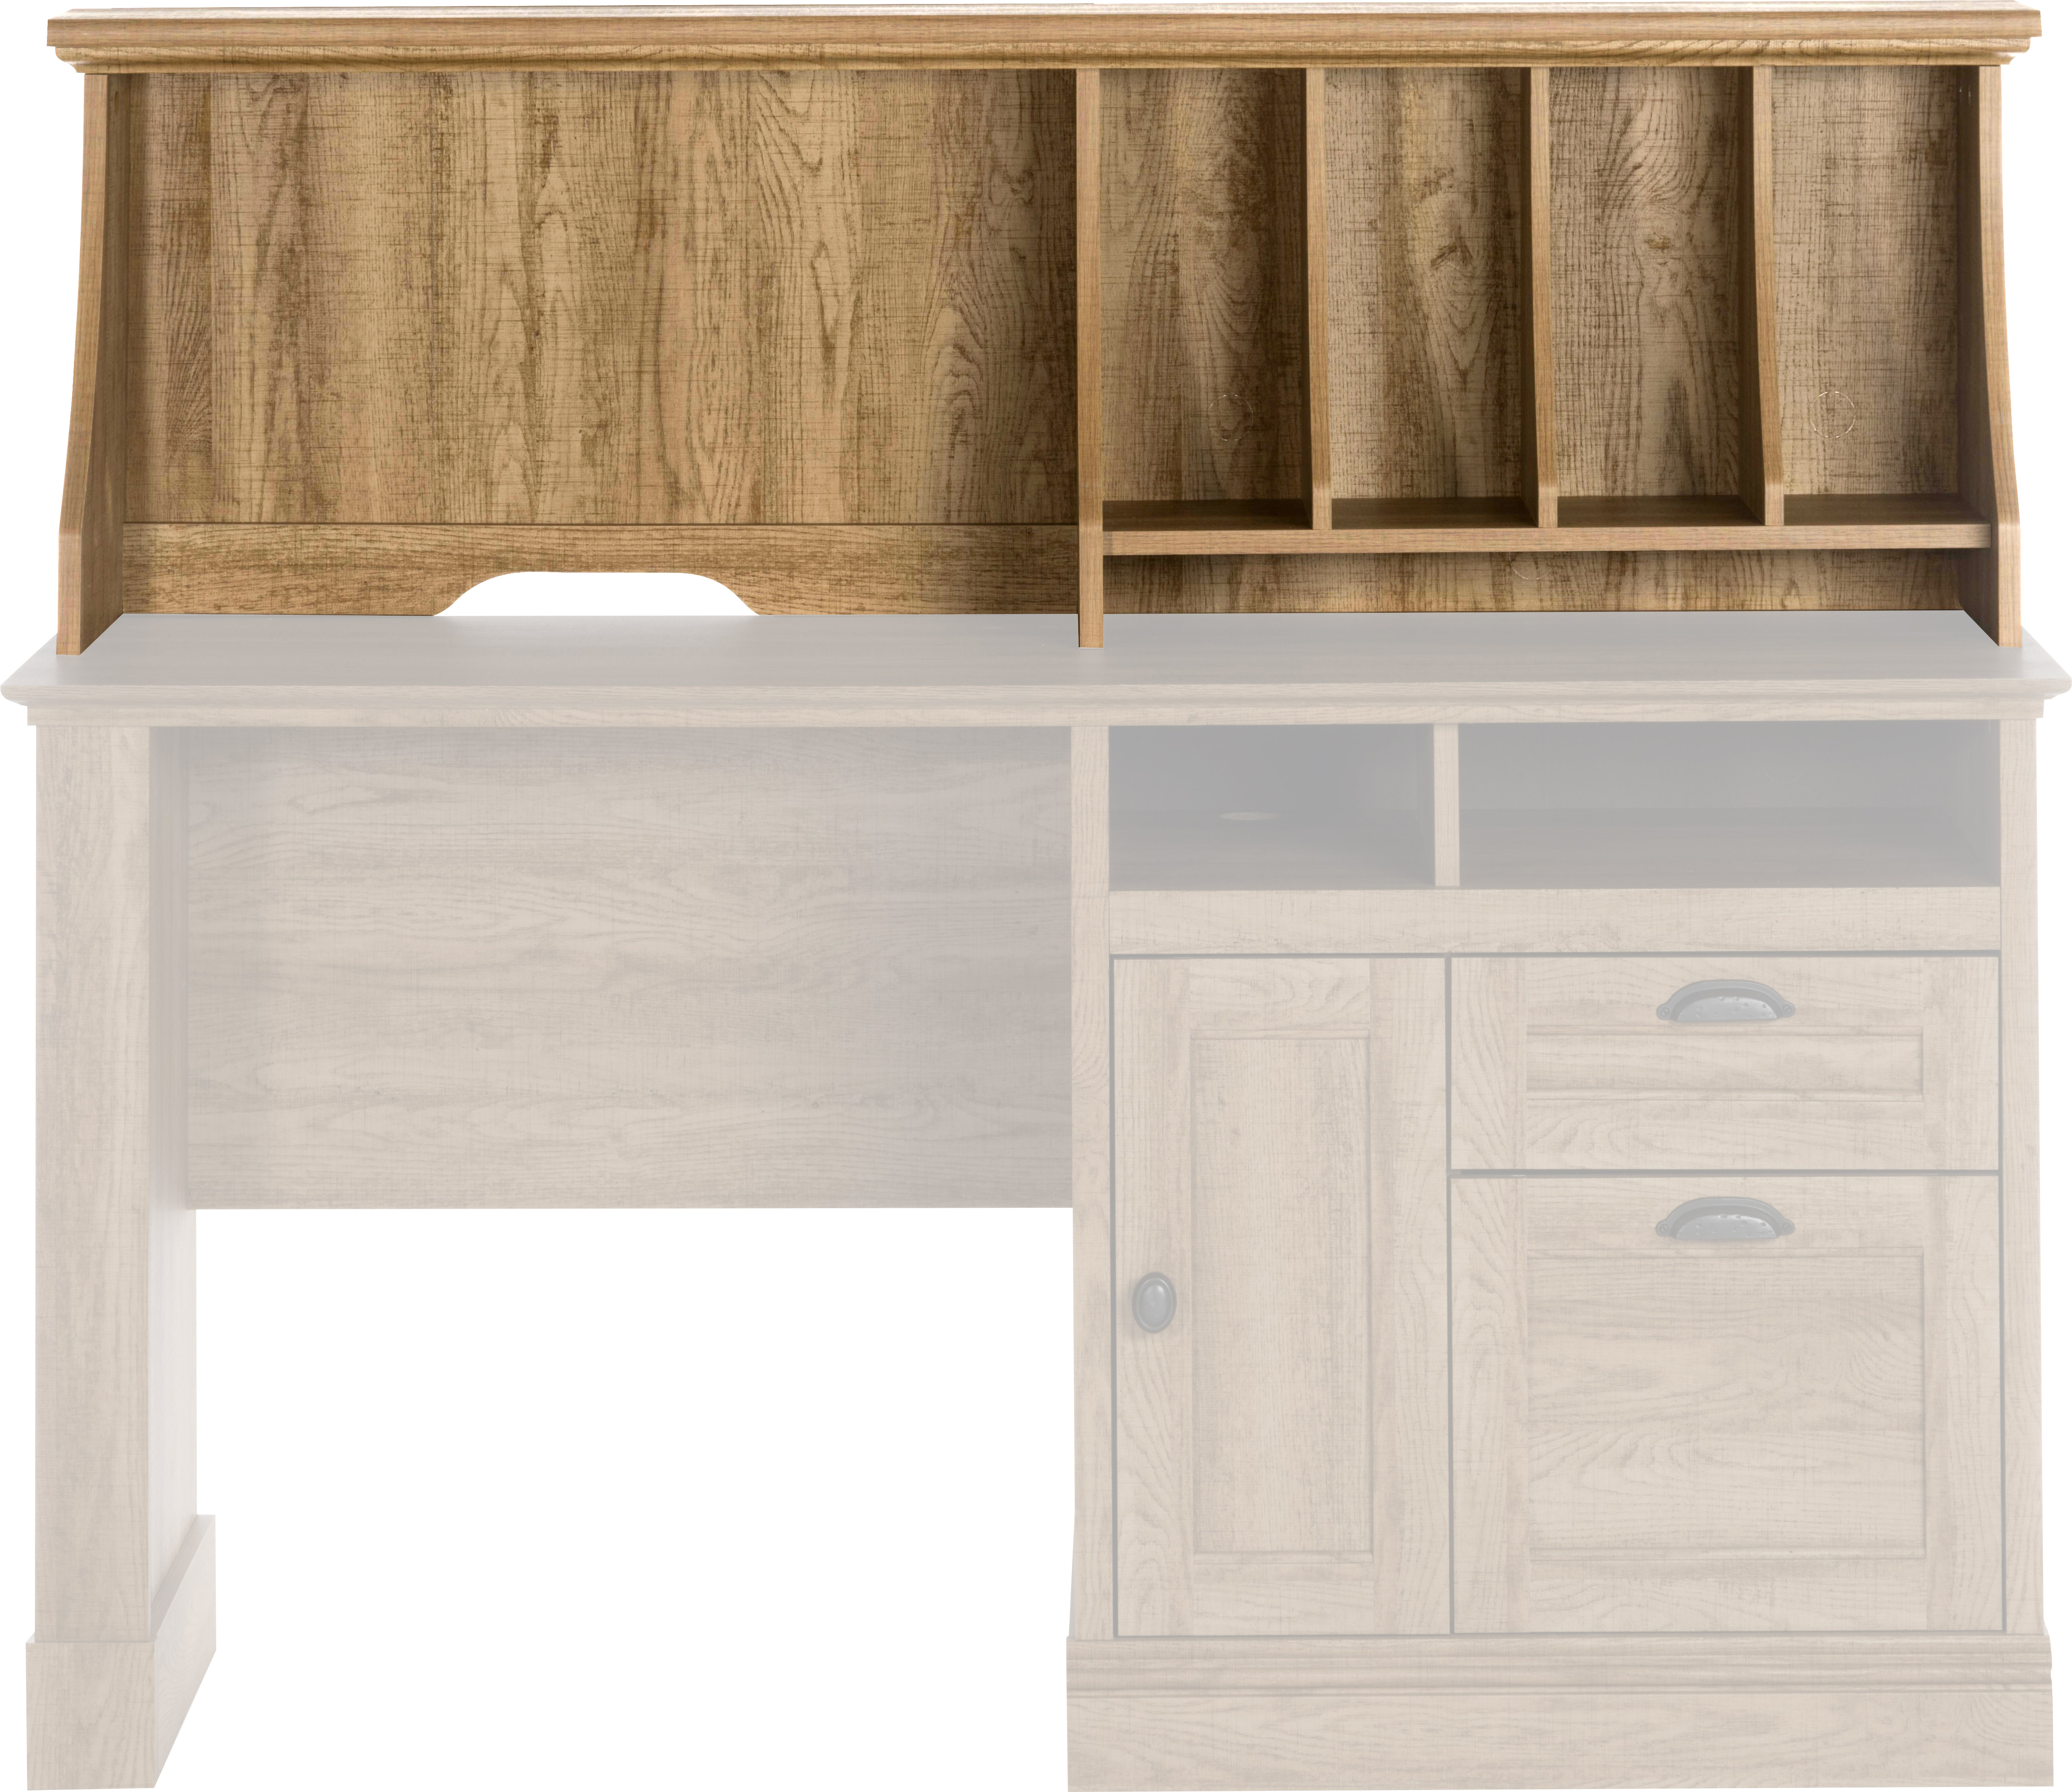 Teknik Office Hutch Option For Scribed Oak Storage Desk Complete With Stylish Scooped Stationery Dividers And Cable Access